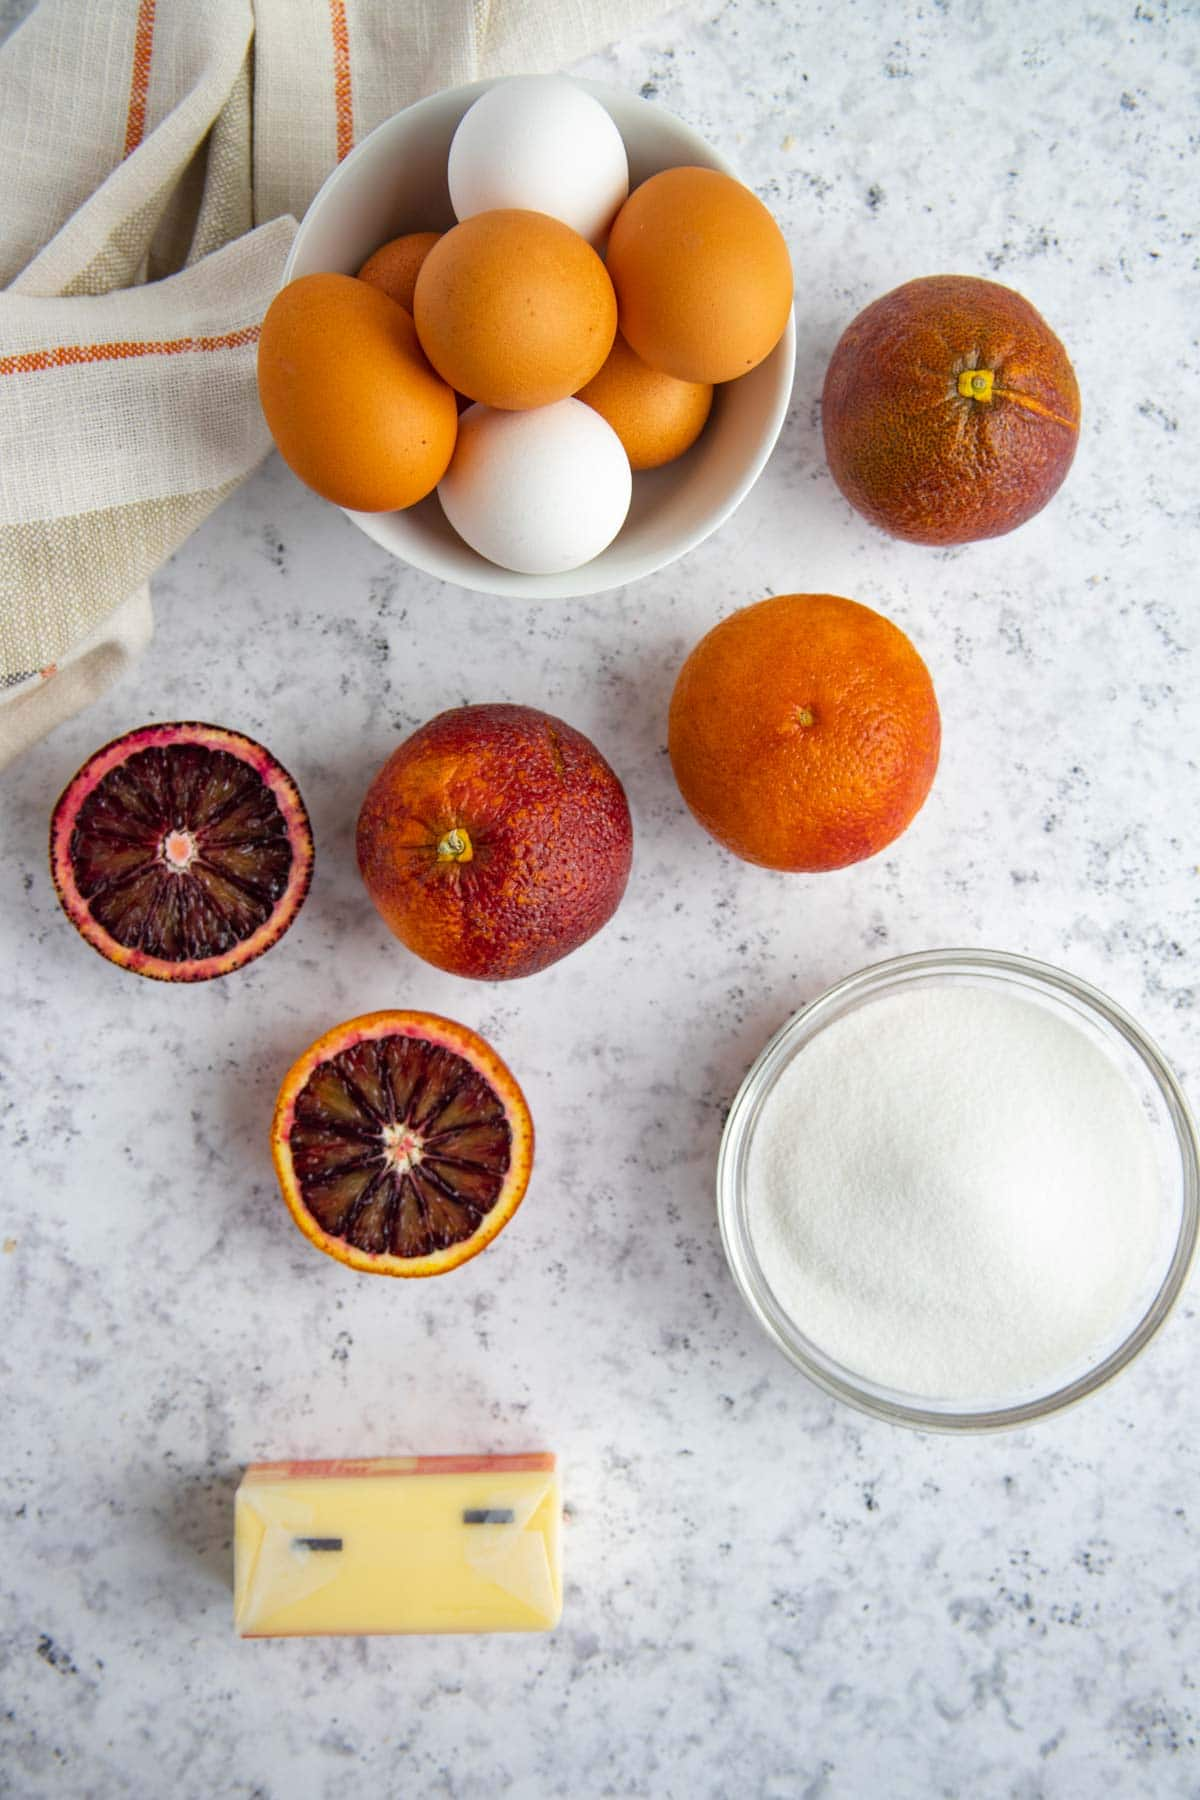 Blood Orange Curd Ingredients - Eggs, Blood Oranges, Sugar and Butter